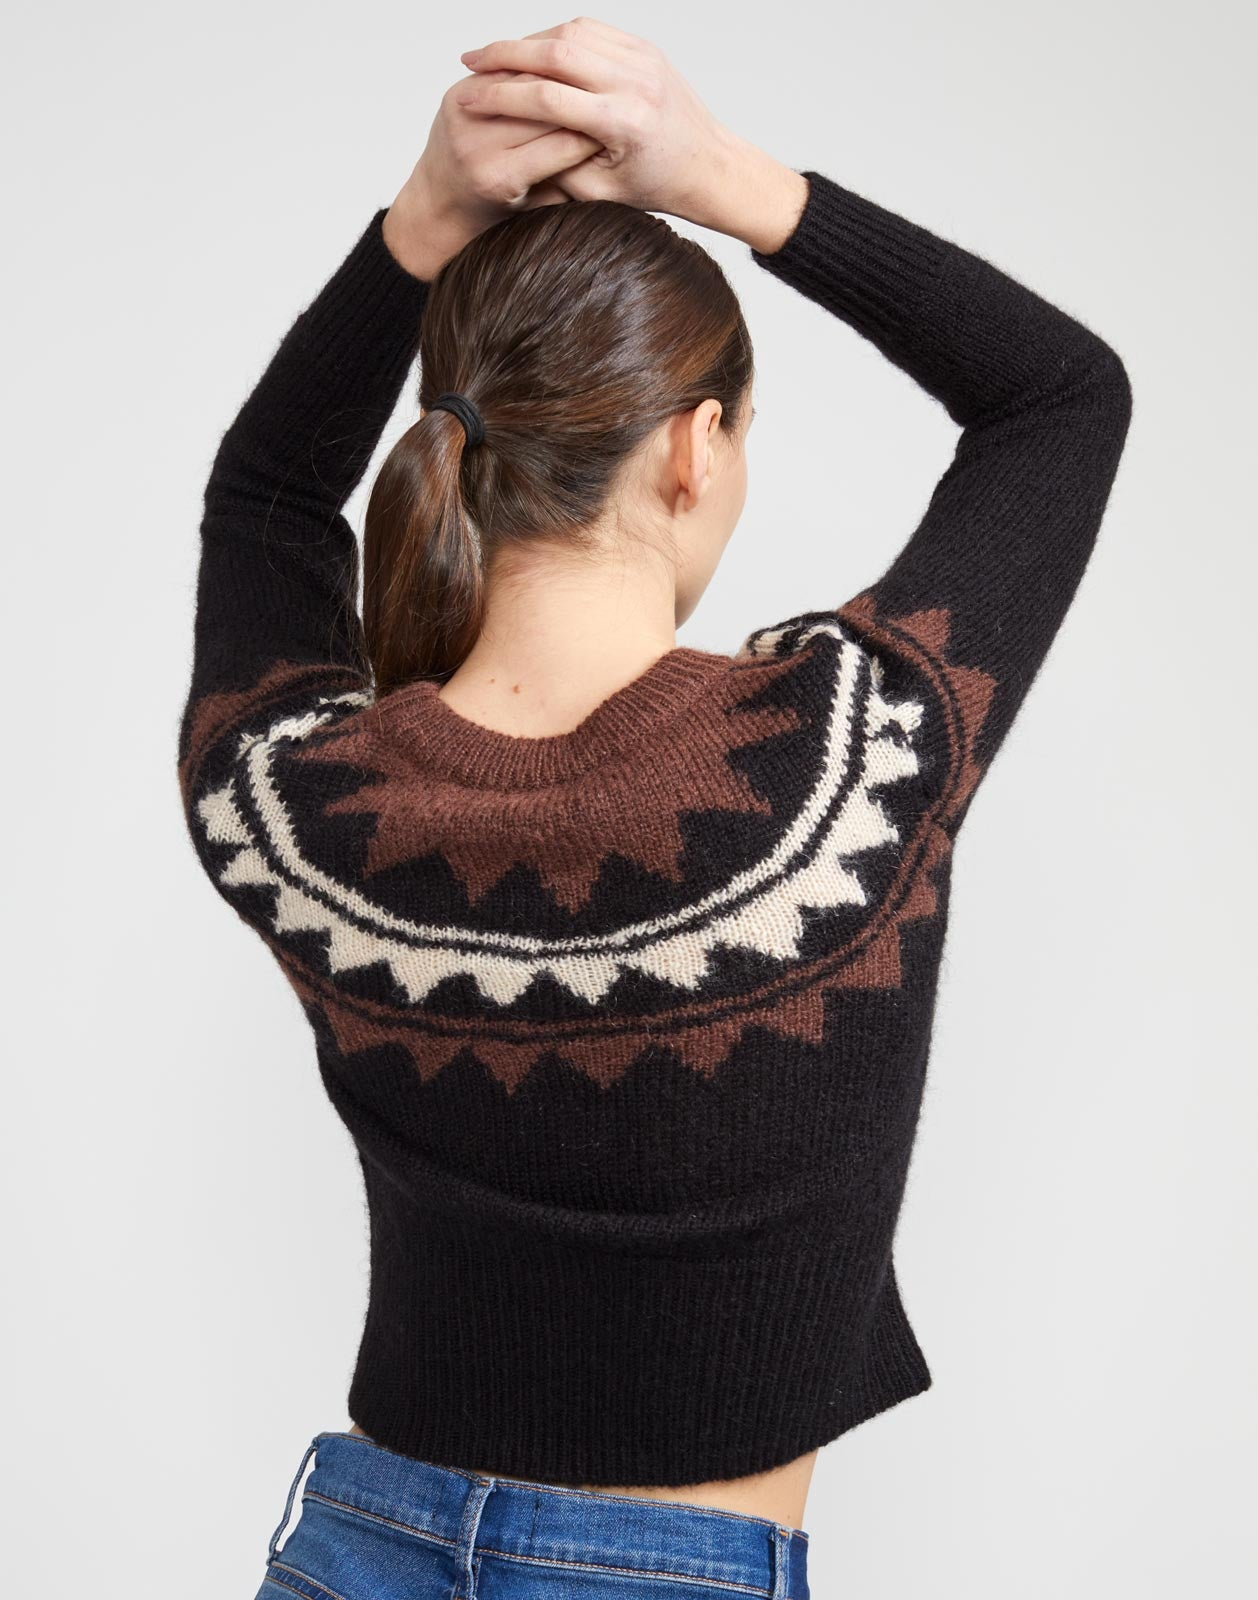 Aspen Intarsia Knit Sweater